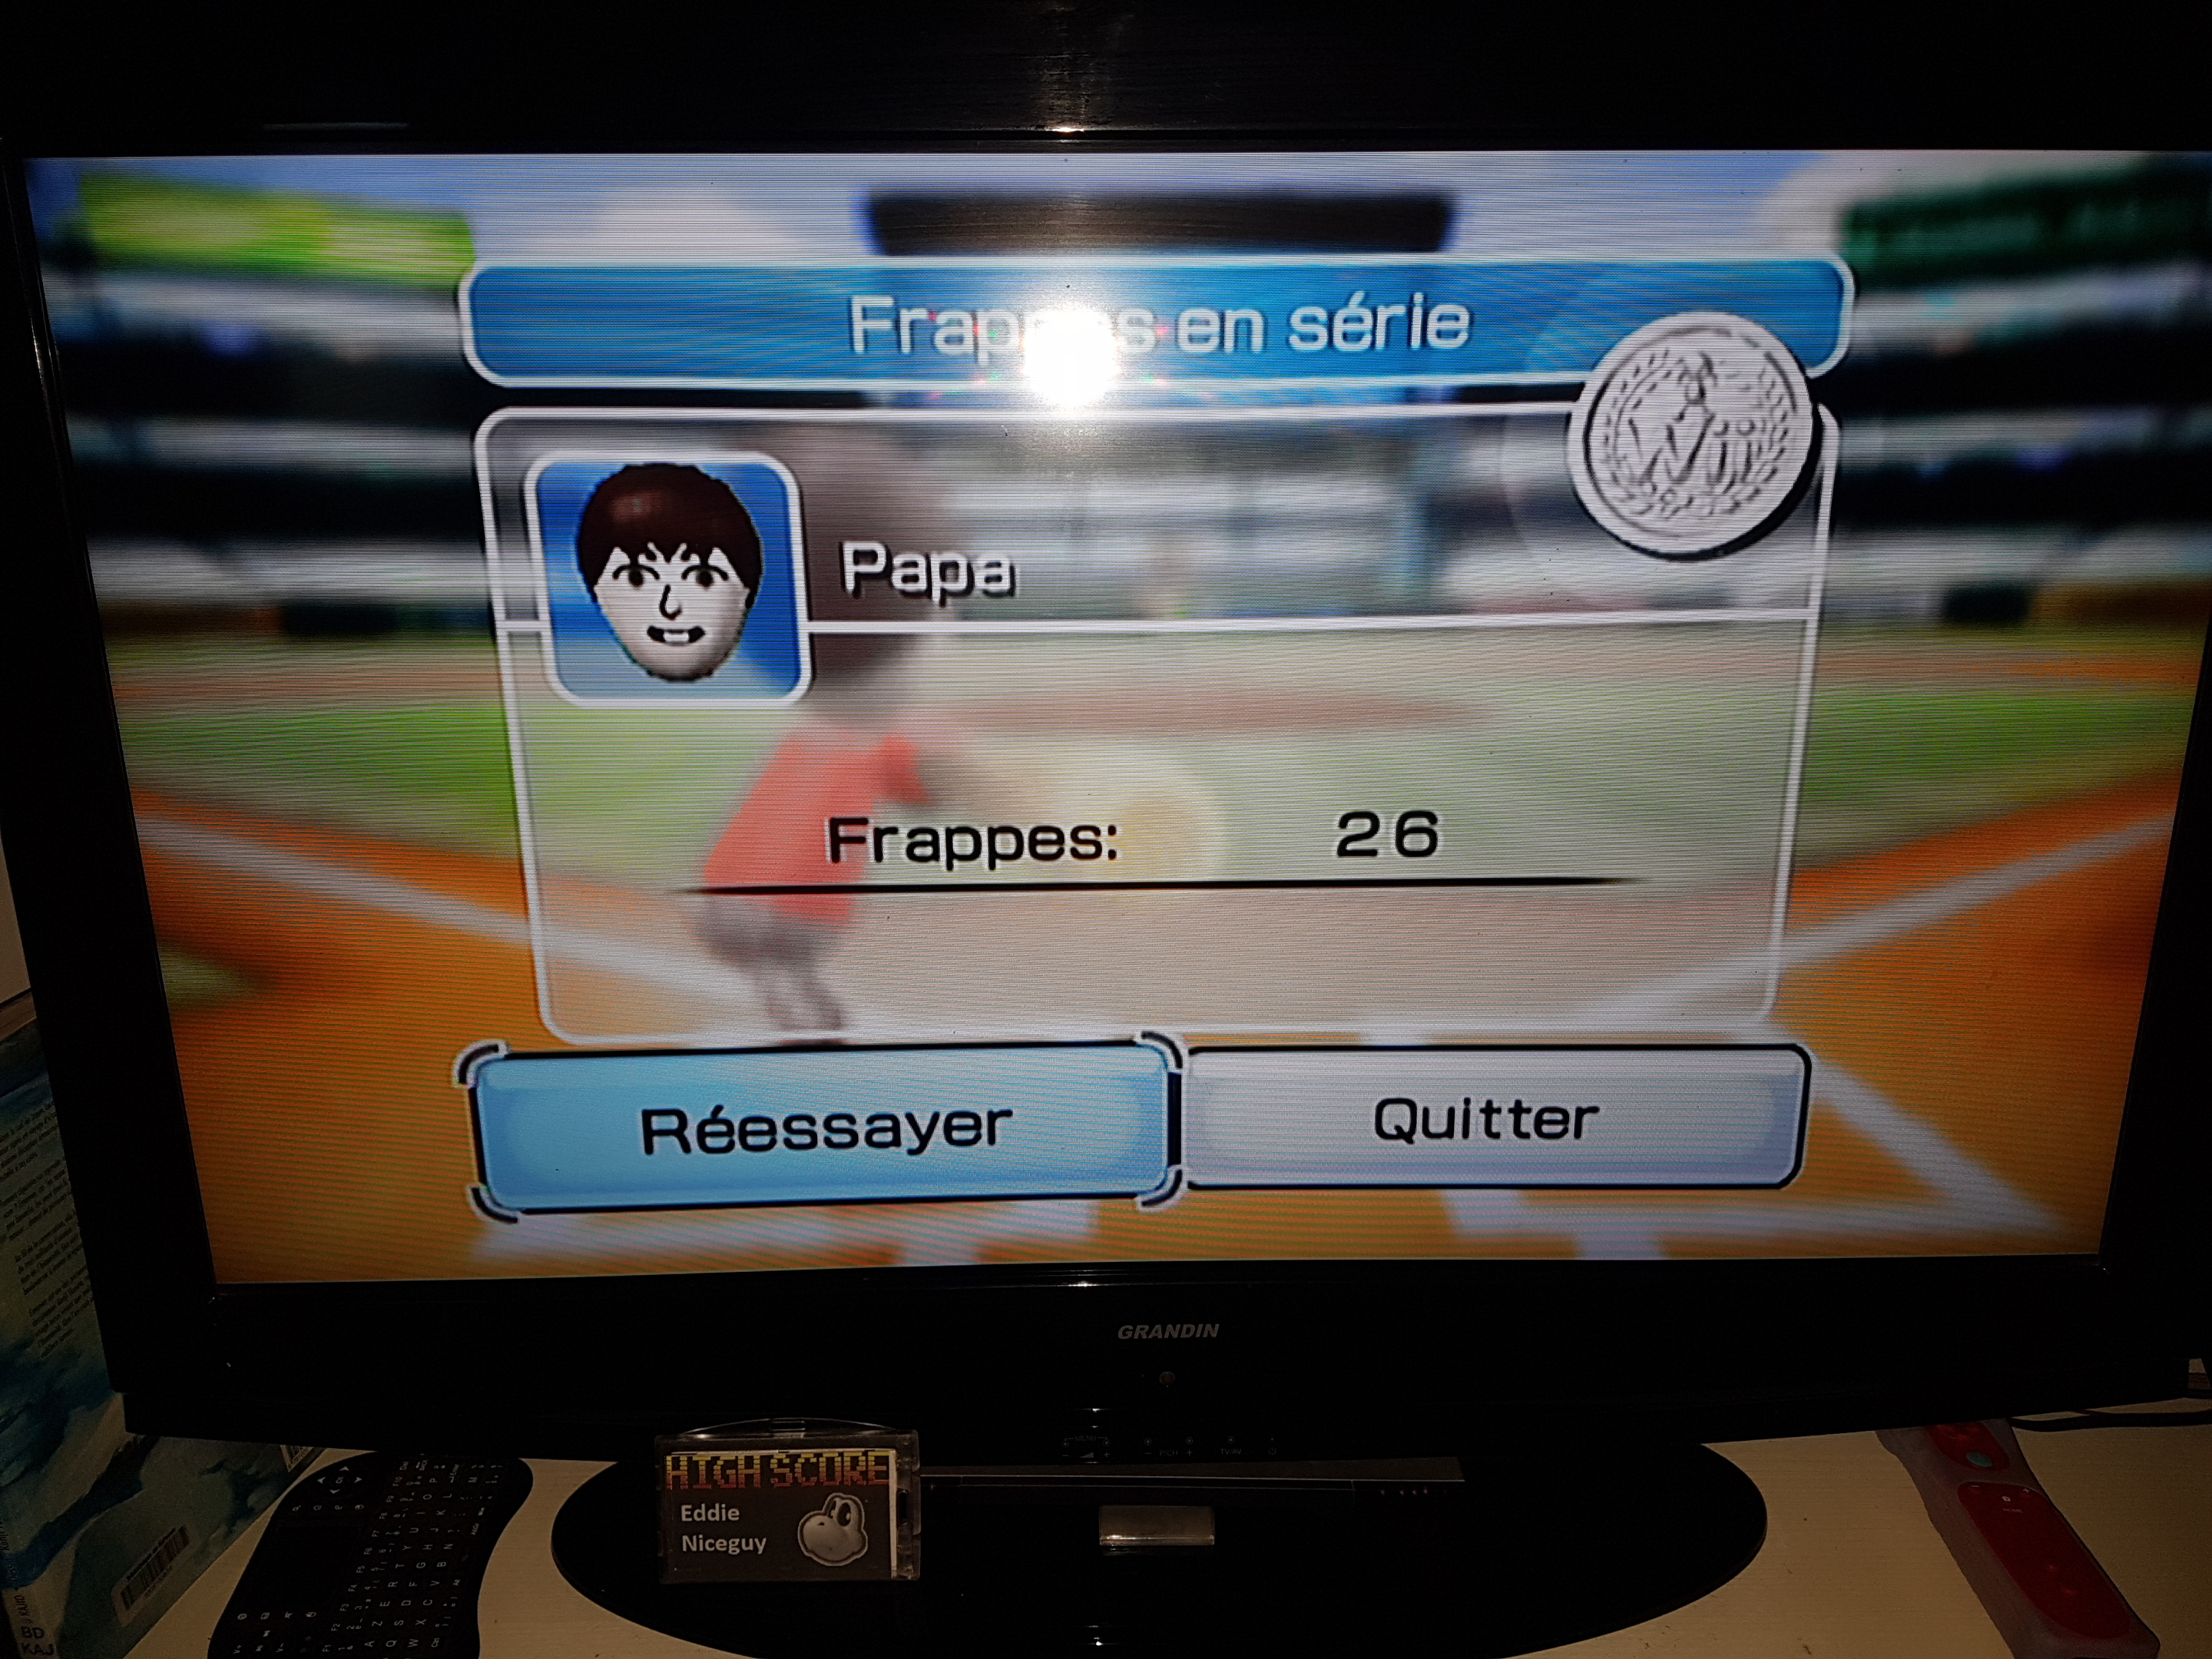 EddieNiceguy: Wii Sports: Baseball [Batting Practice] (Wii) 26 points on 2019-06-15 14:35:15